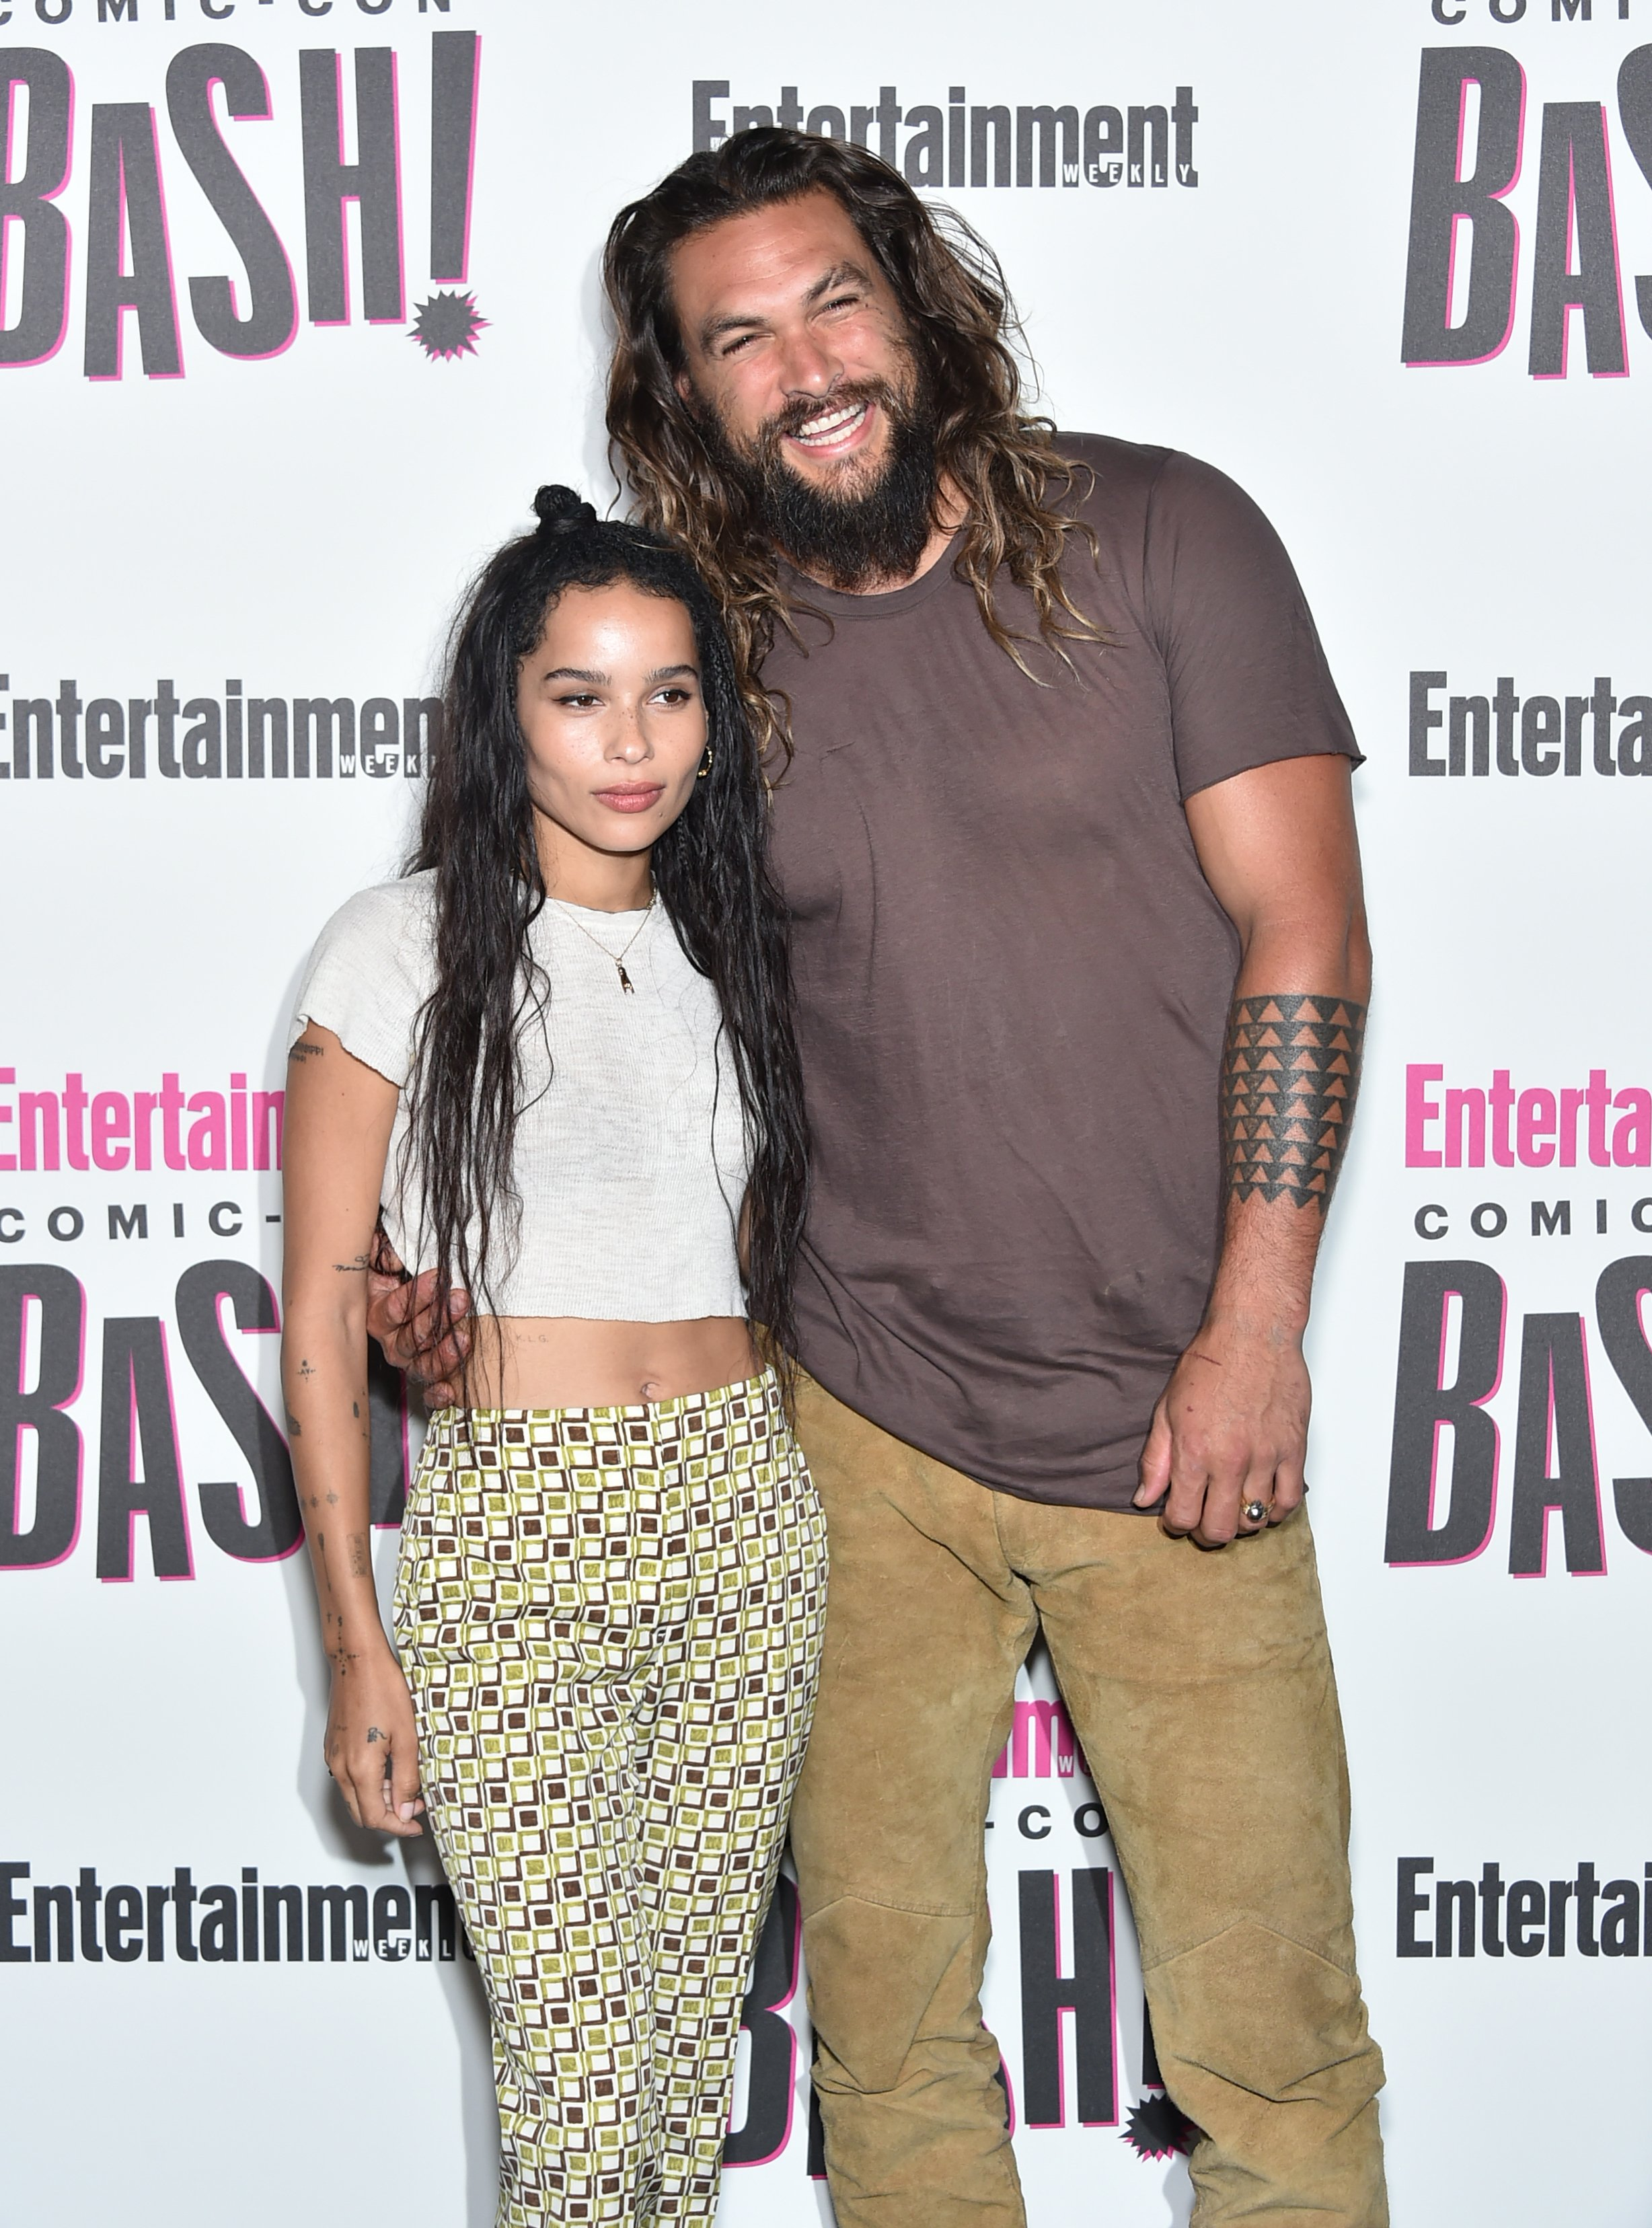 Zoe Kravitz & Jason Momoa at Entertainment Weekly's Comic-Con Bash on July 21, 2018 in California | Photo: Getty Images